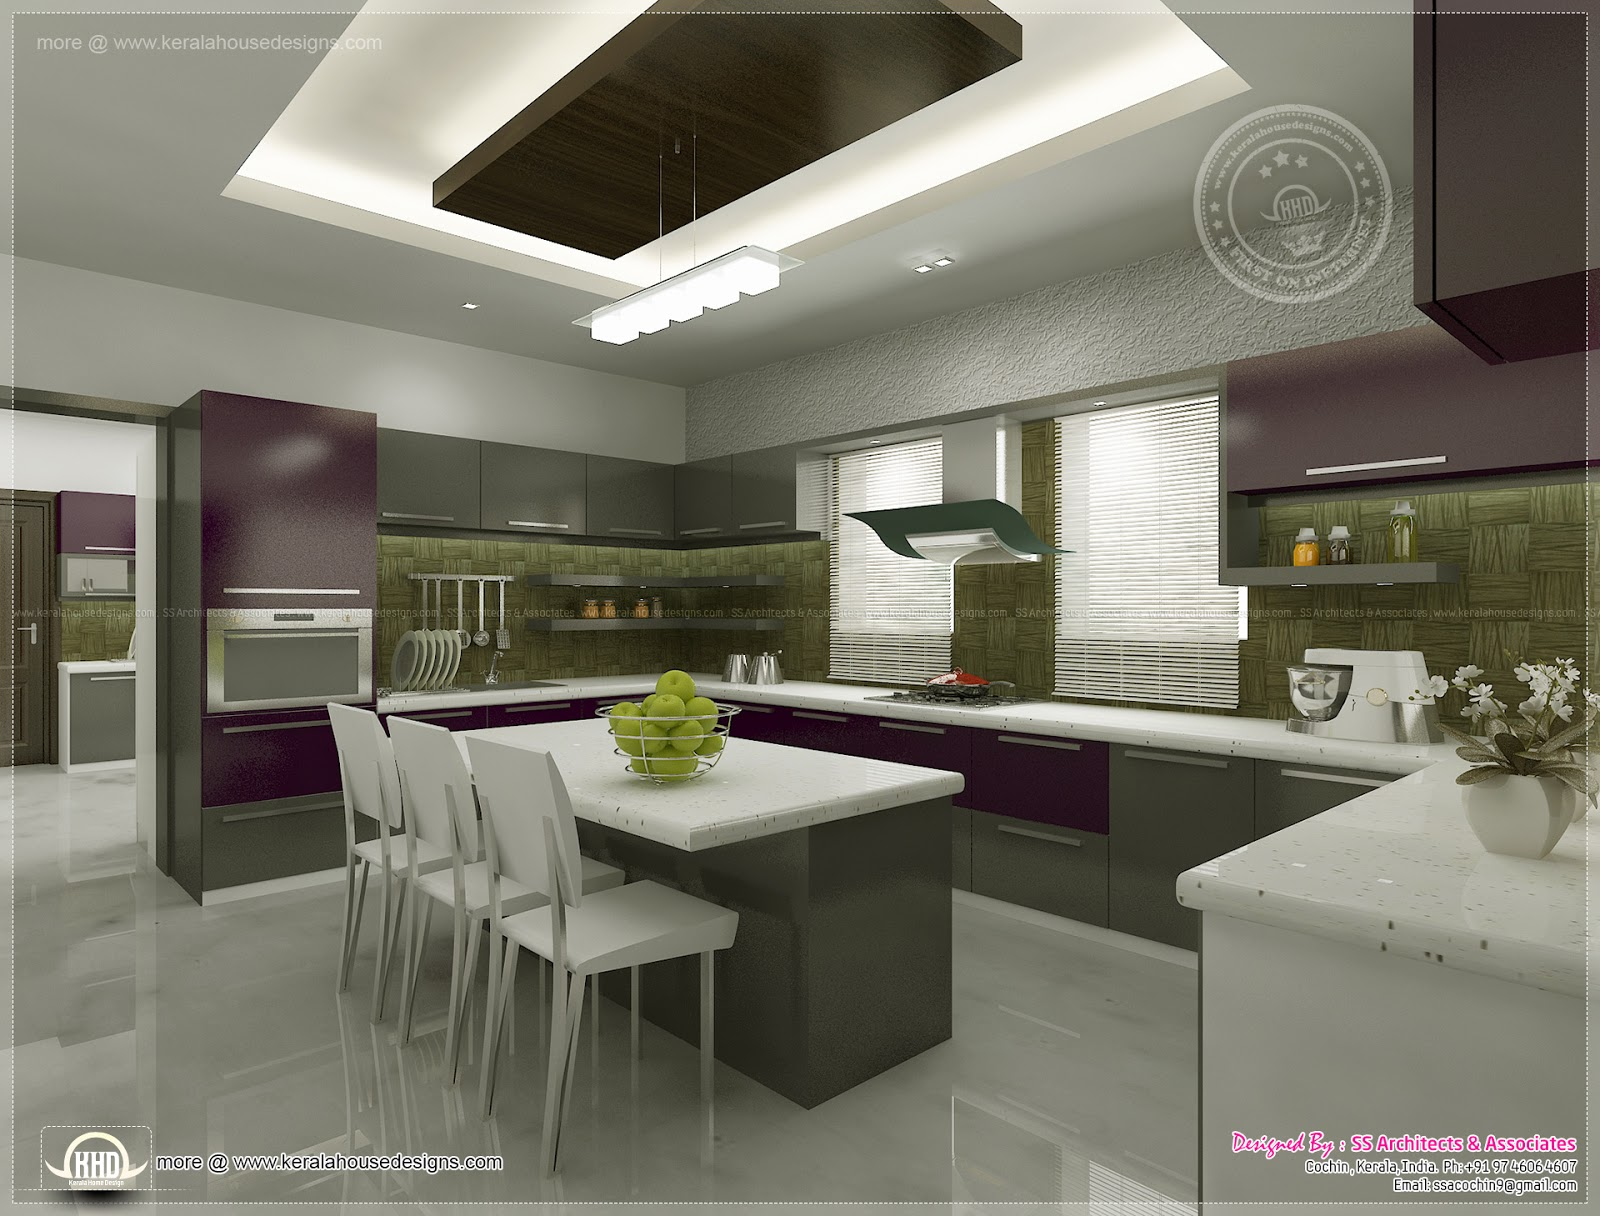 Kitchen interior views by ss architects cochin kerala for Home designs kerala architects